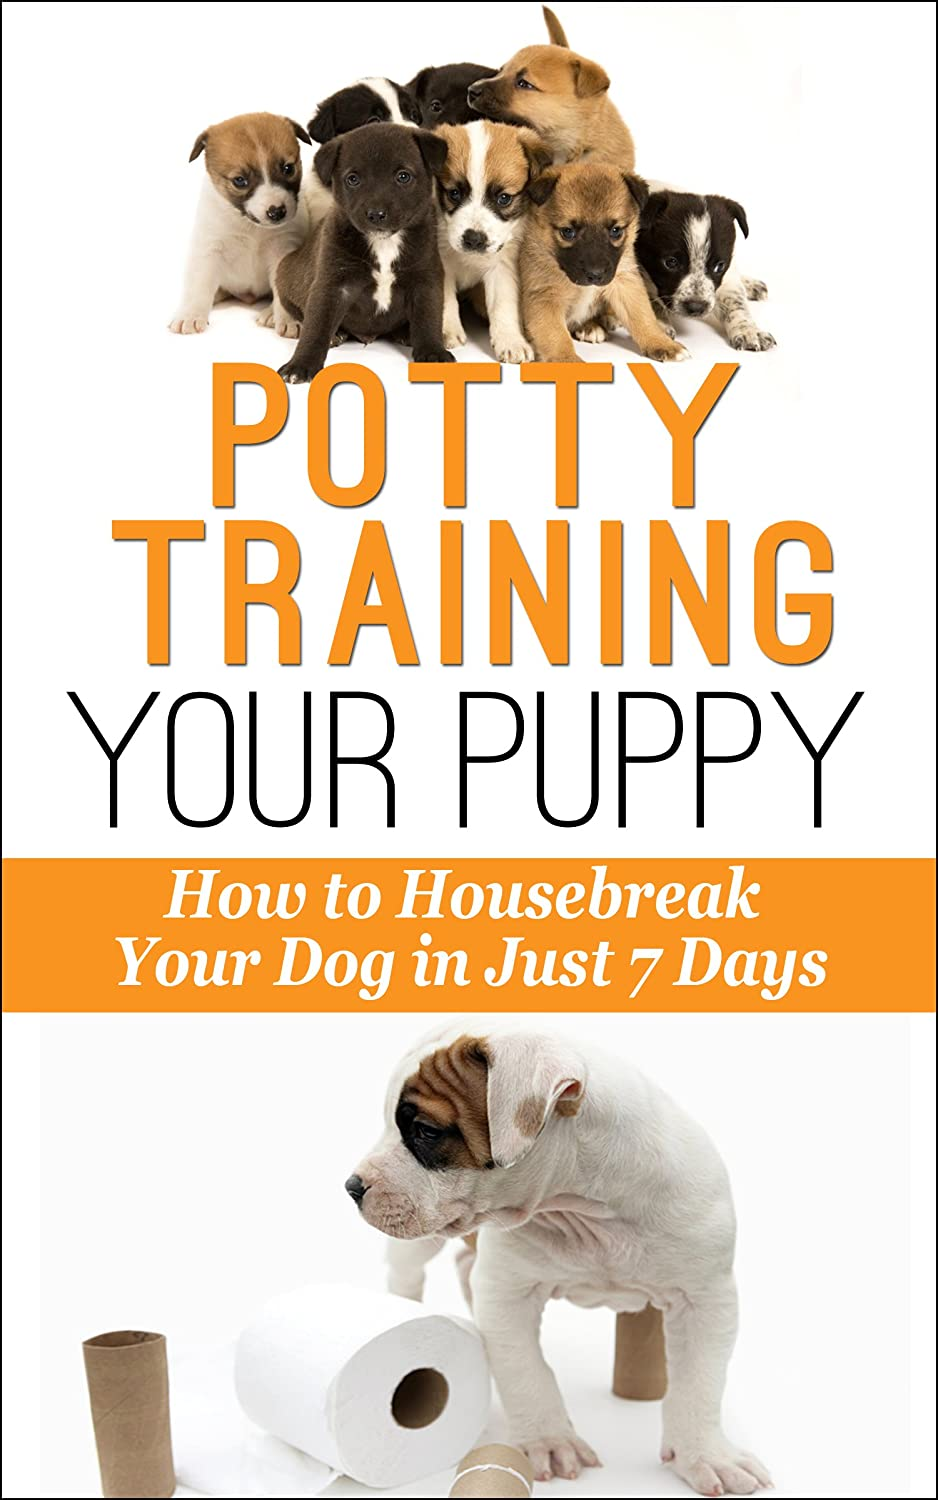 Potty_Training_Your_Puppy